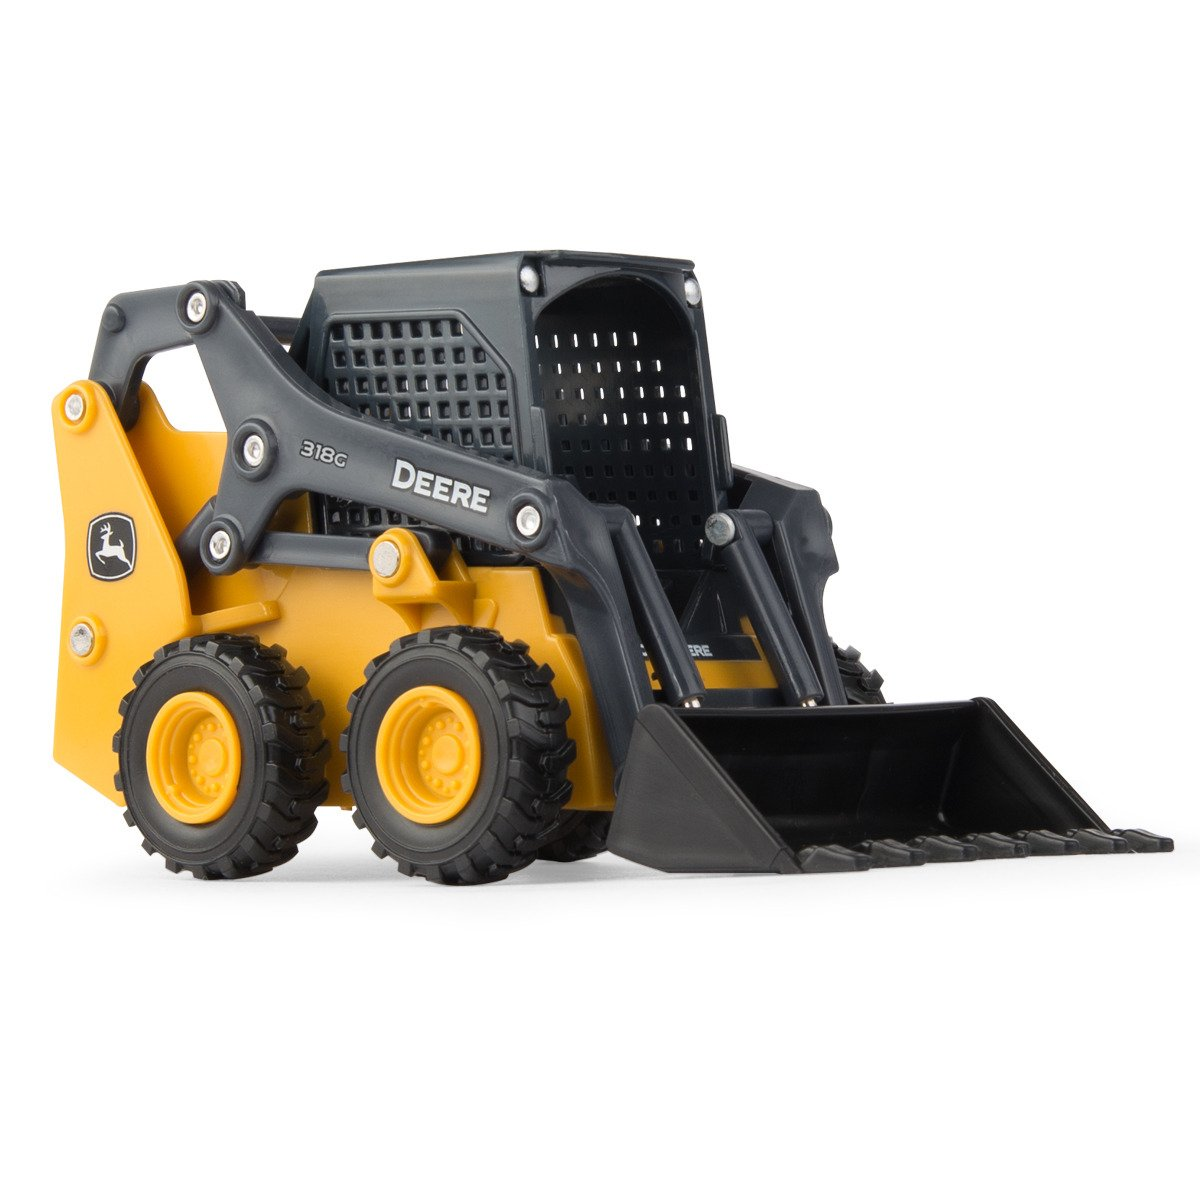 1/32 Scale John Deere 318G Skid Steer Toy LP68580